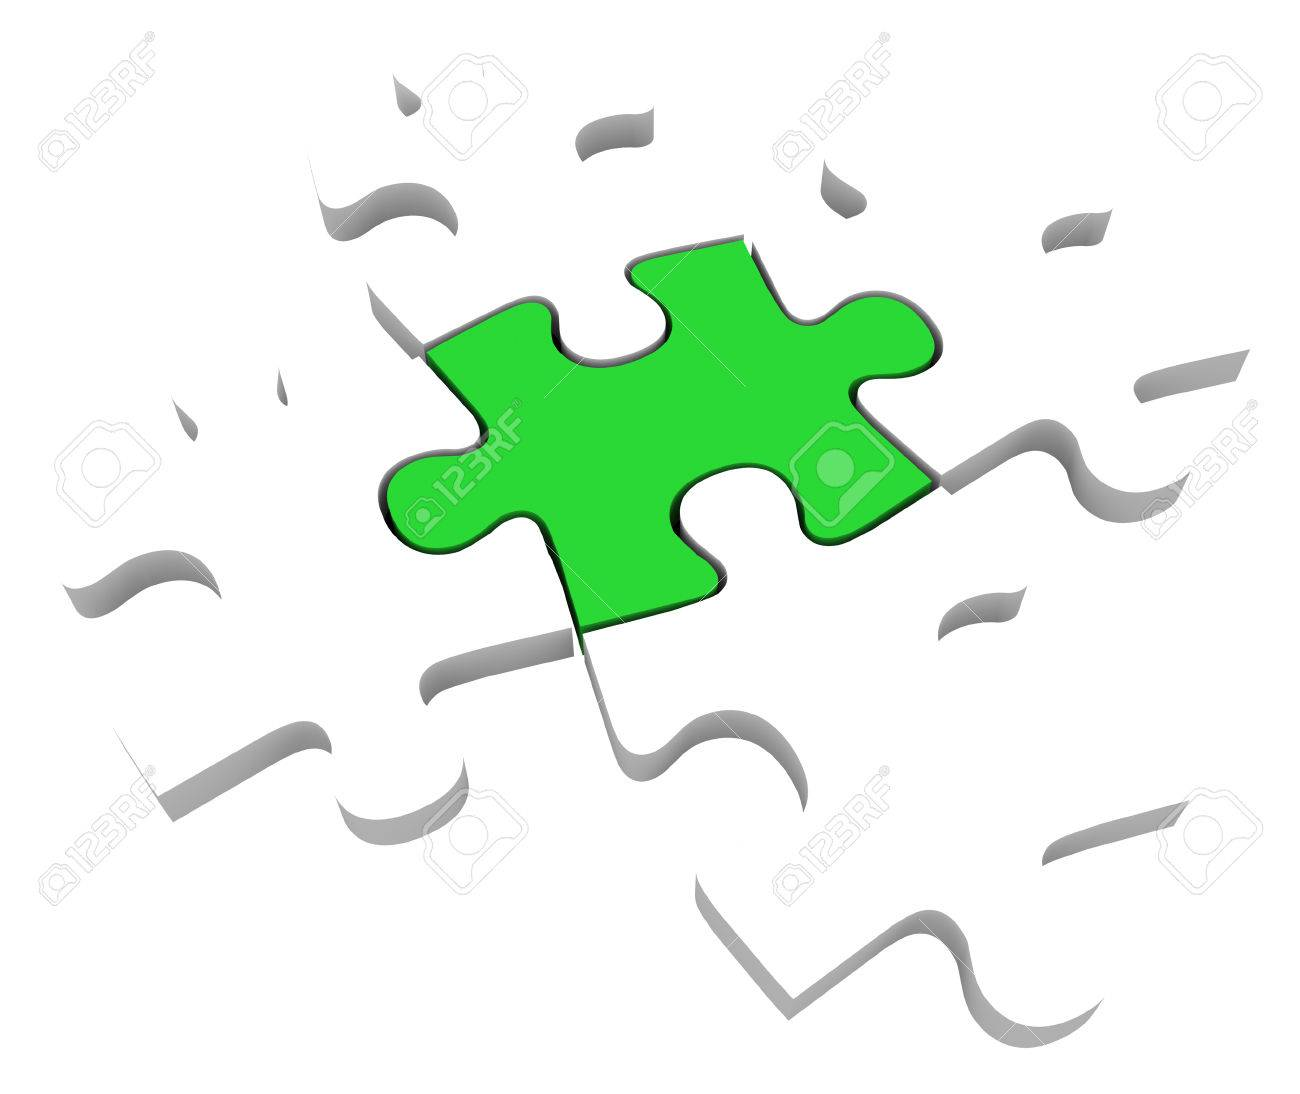 One Unique Green Puzzle Piece Among 5 Pieces To Illustrate Being Different Special